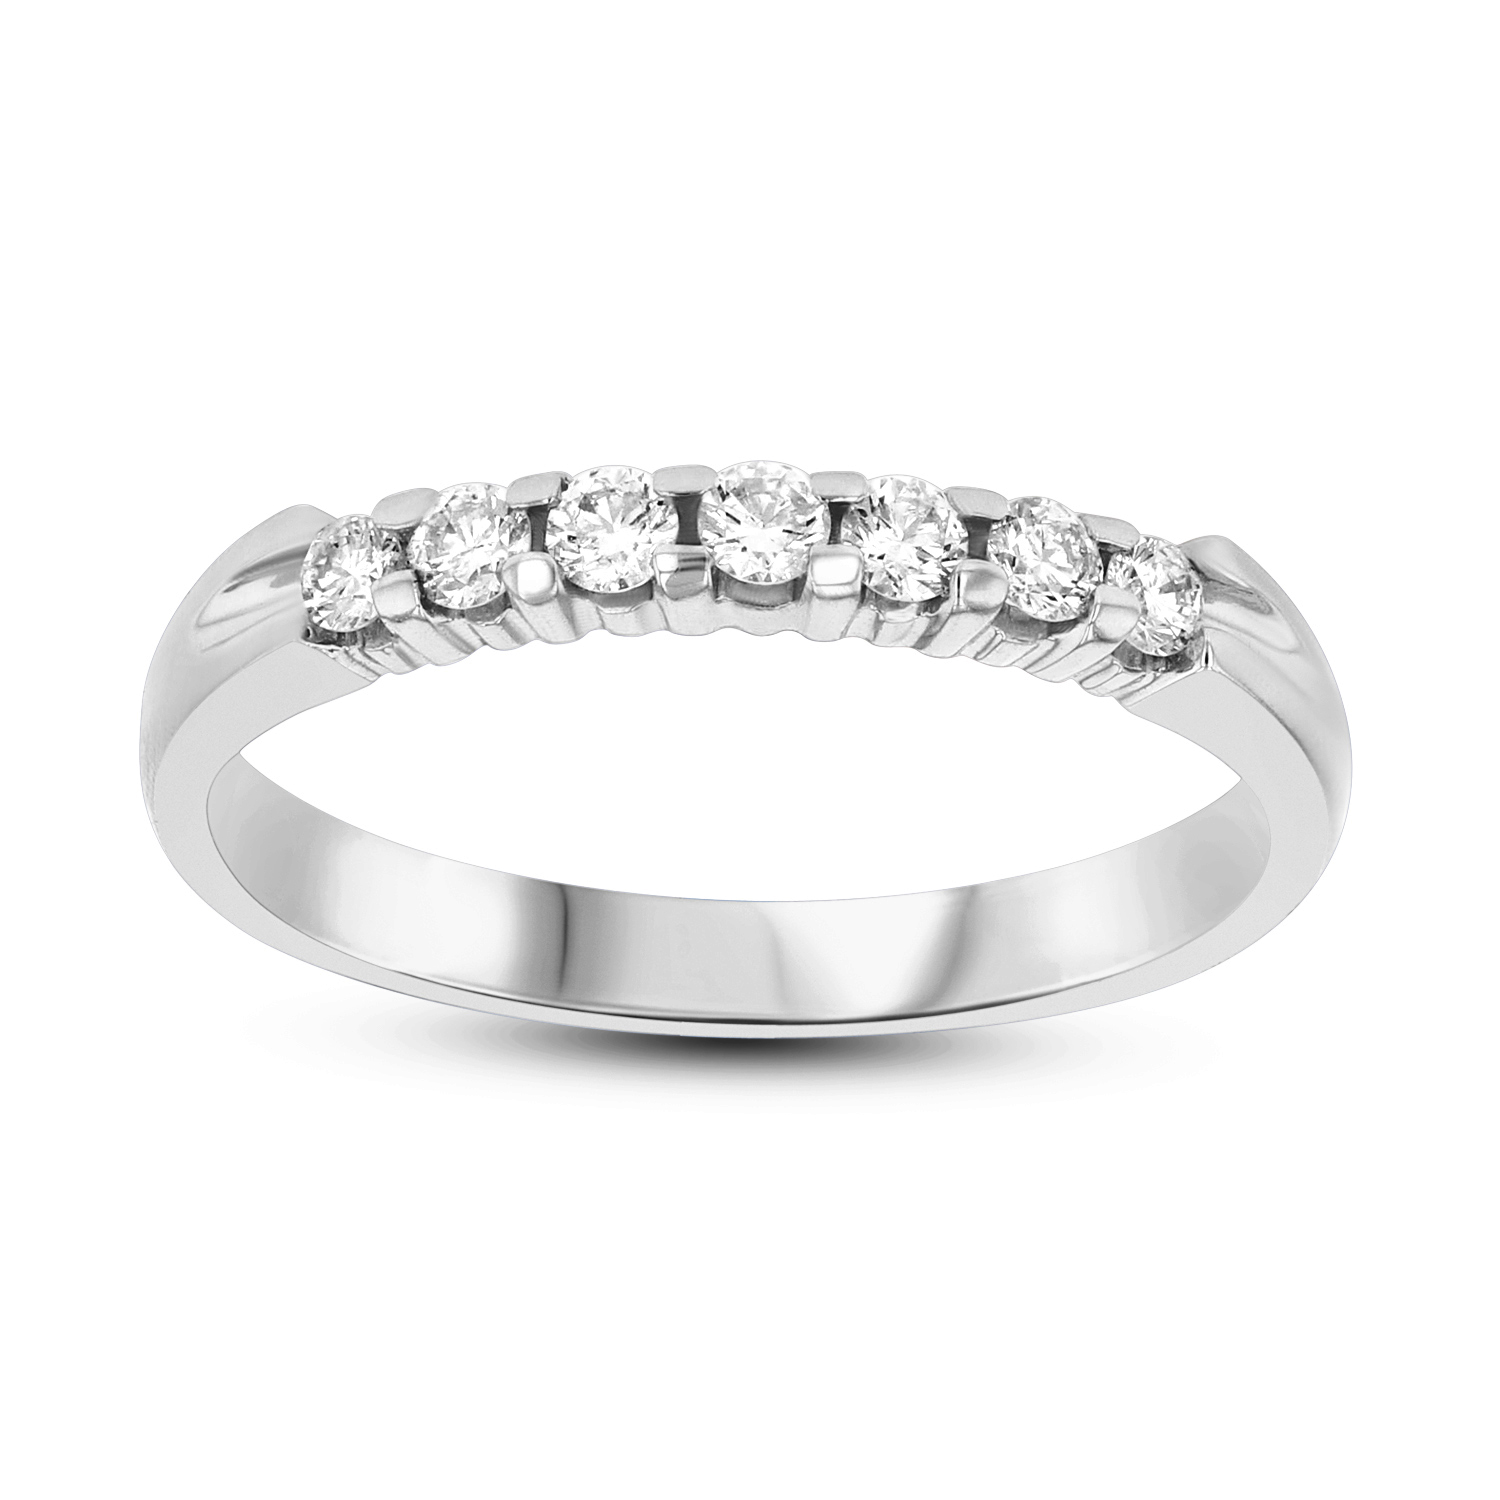 View 0.25ct tw 7 Stone Round Diamonds Shared Prong Anniversary or Wedding Band 14k Gold Bridal Ring H-J, SI